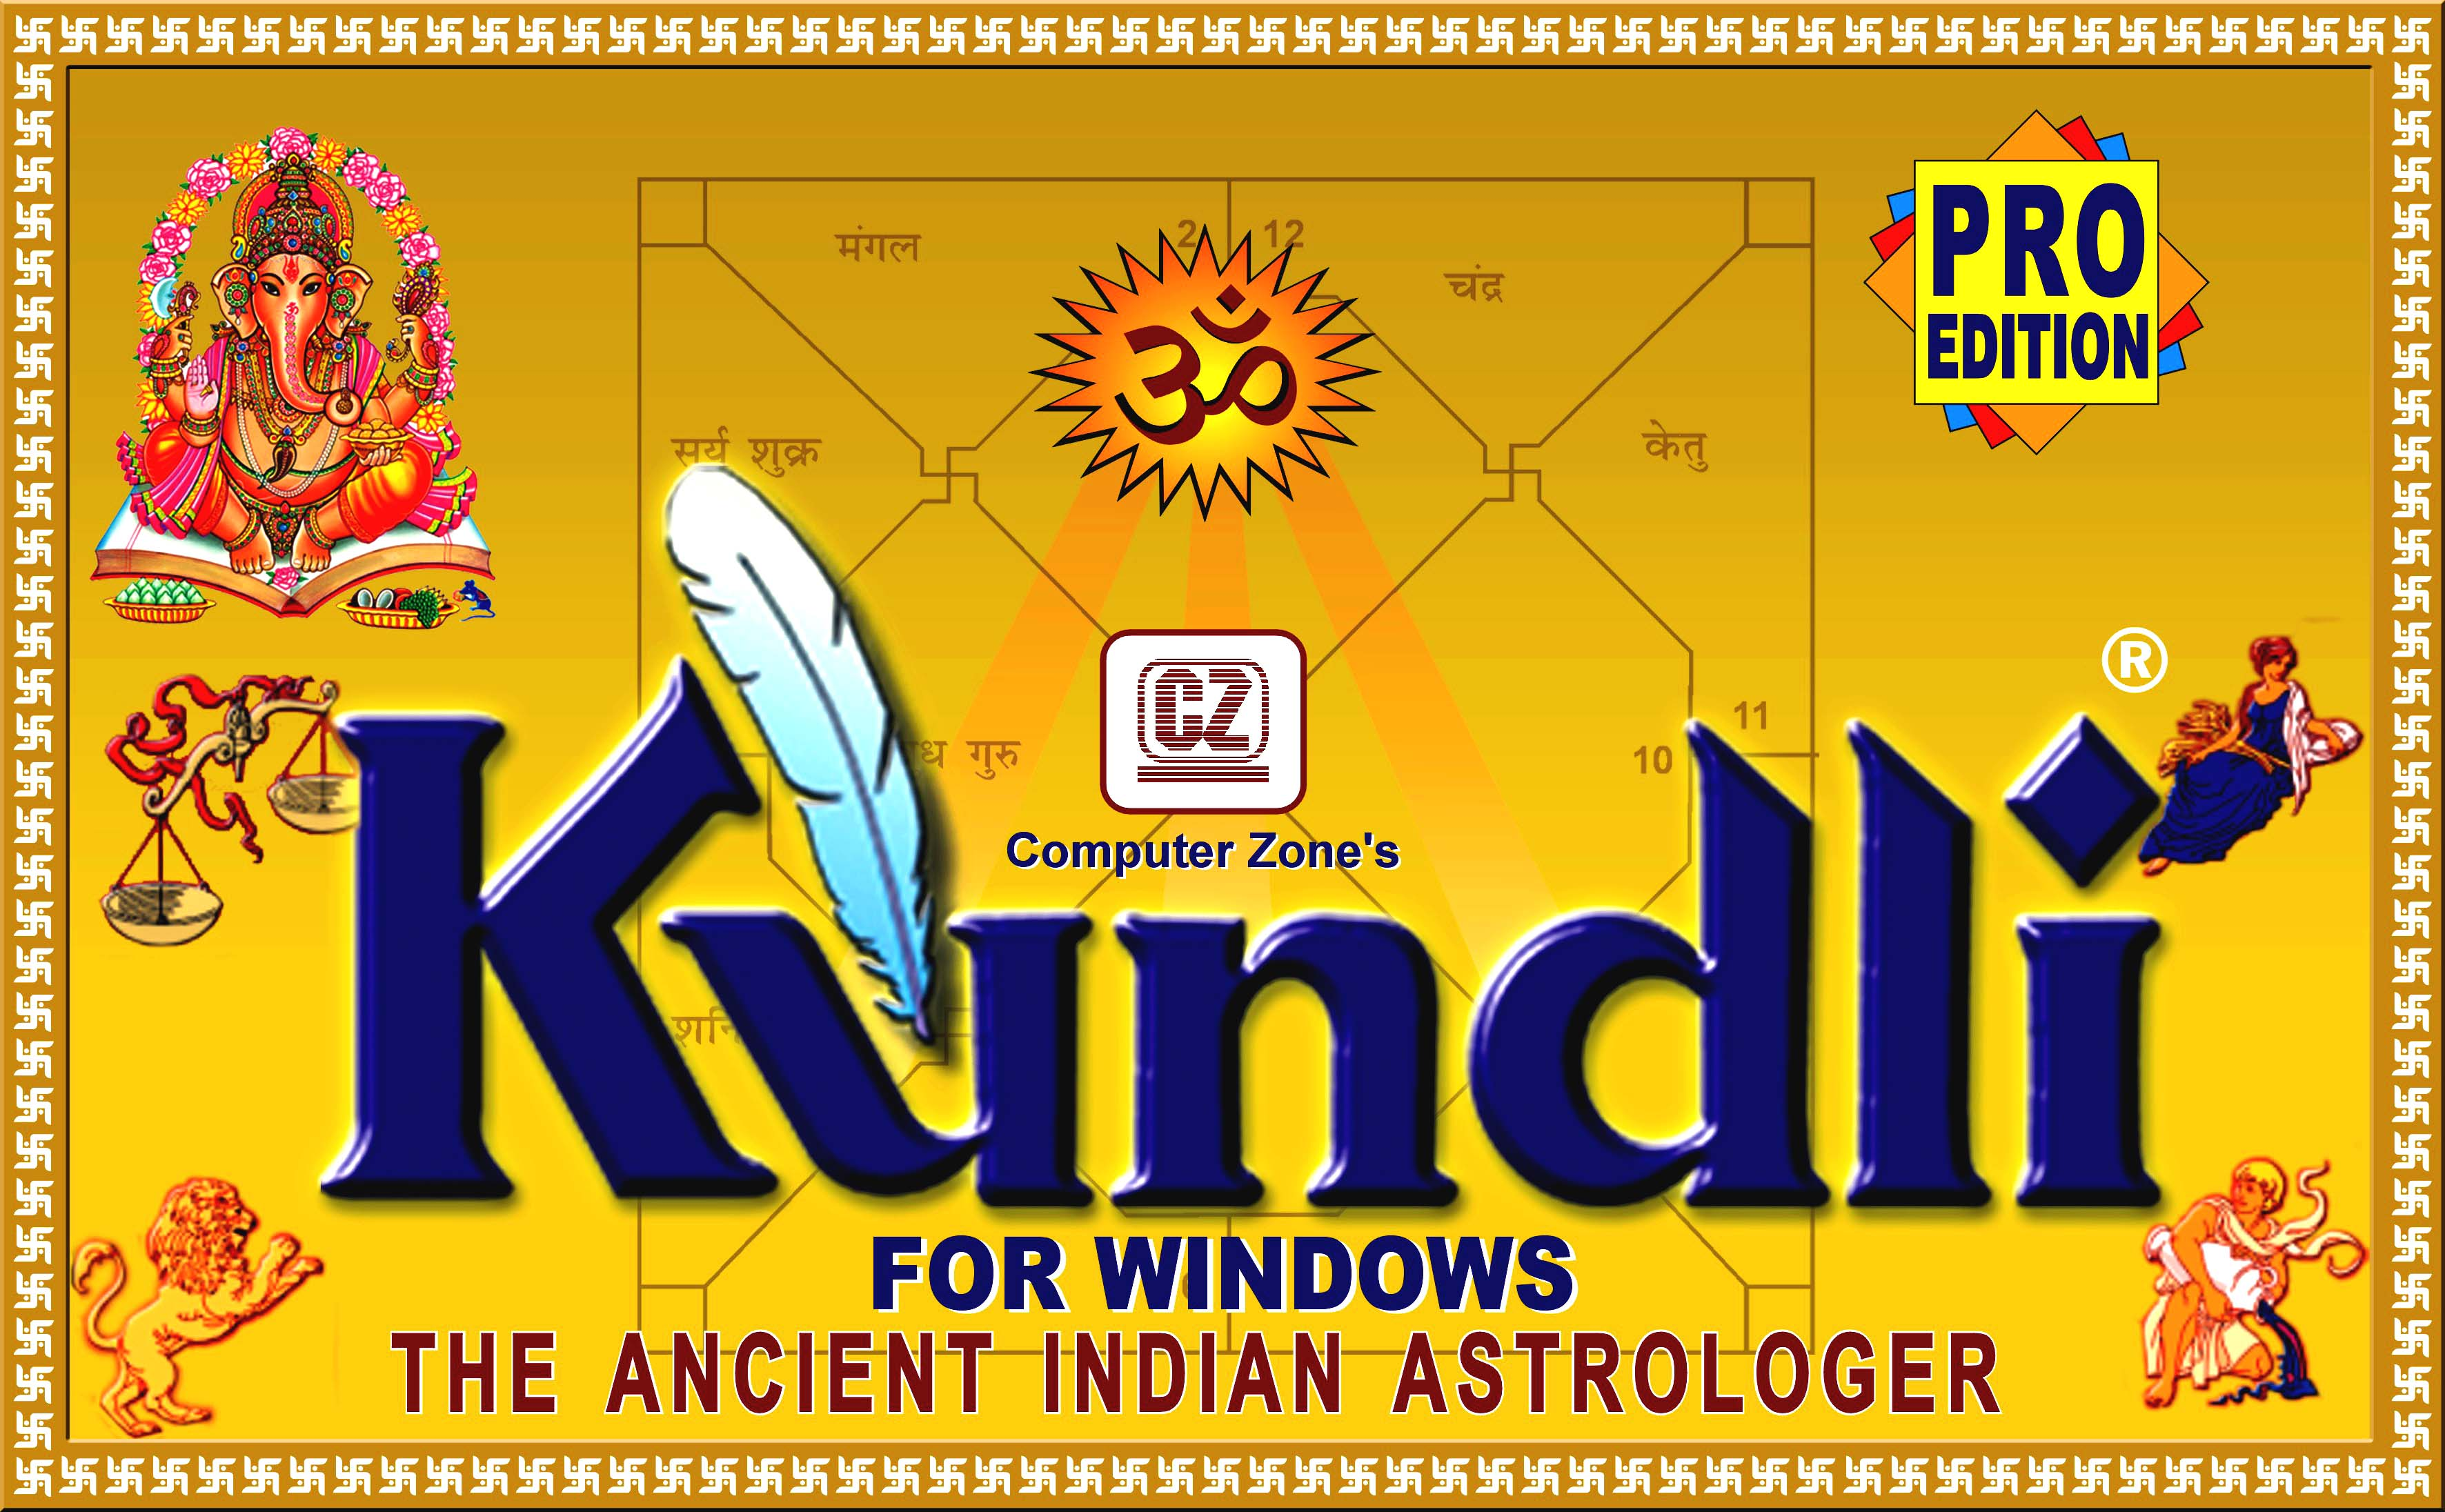 Top 5 kundli software free download full version in hindi.